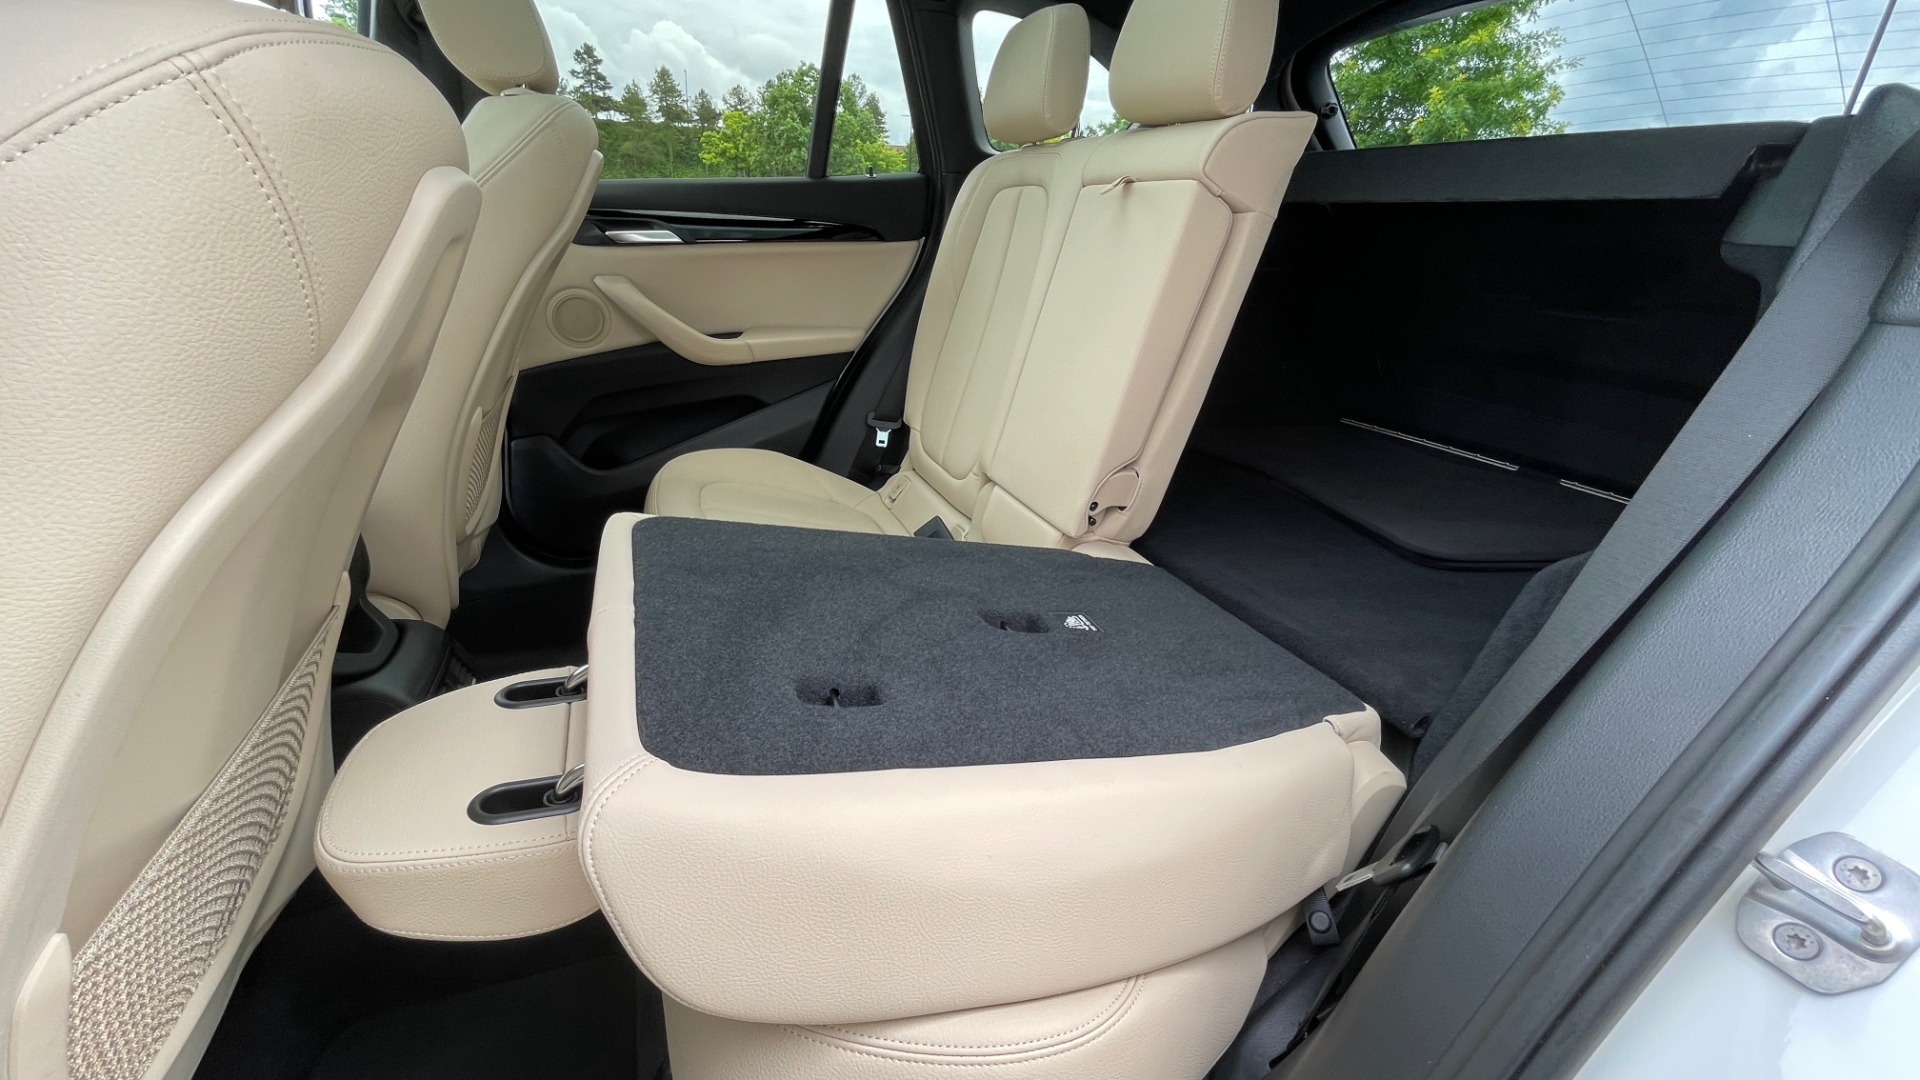 Used 2018 BMW X1 XDRIVE28I / CONV PKG / PANO-ROOF / HTD STS / PARK ASST / REARVIEW for sale $30,995 at Formula Imports in Charlotte NC 28227 74